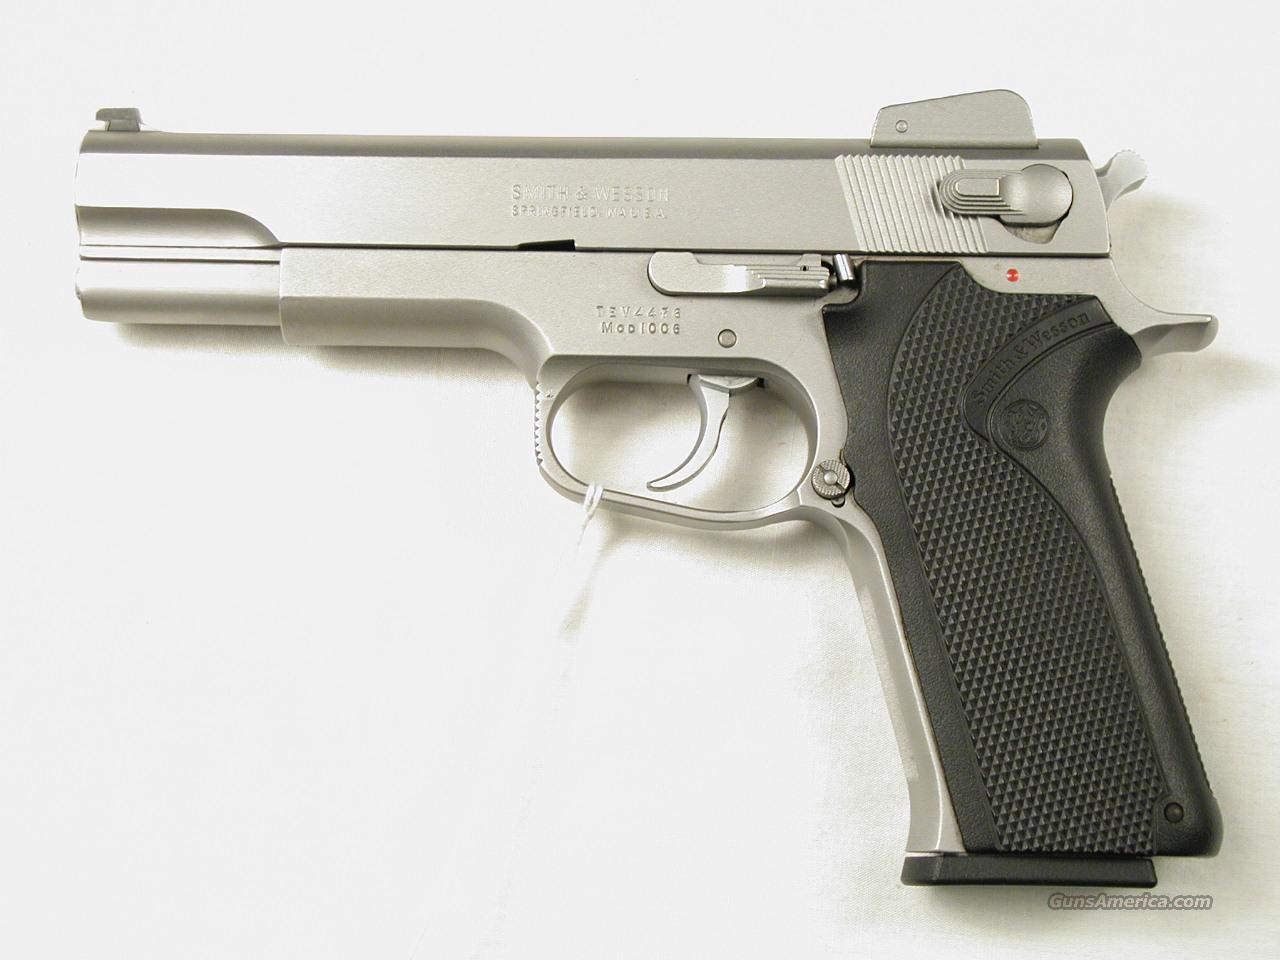 SMITH & WESSON 1006  Guns > Pistols > Smith & Wesson Pistols - Autos > Steel Frame